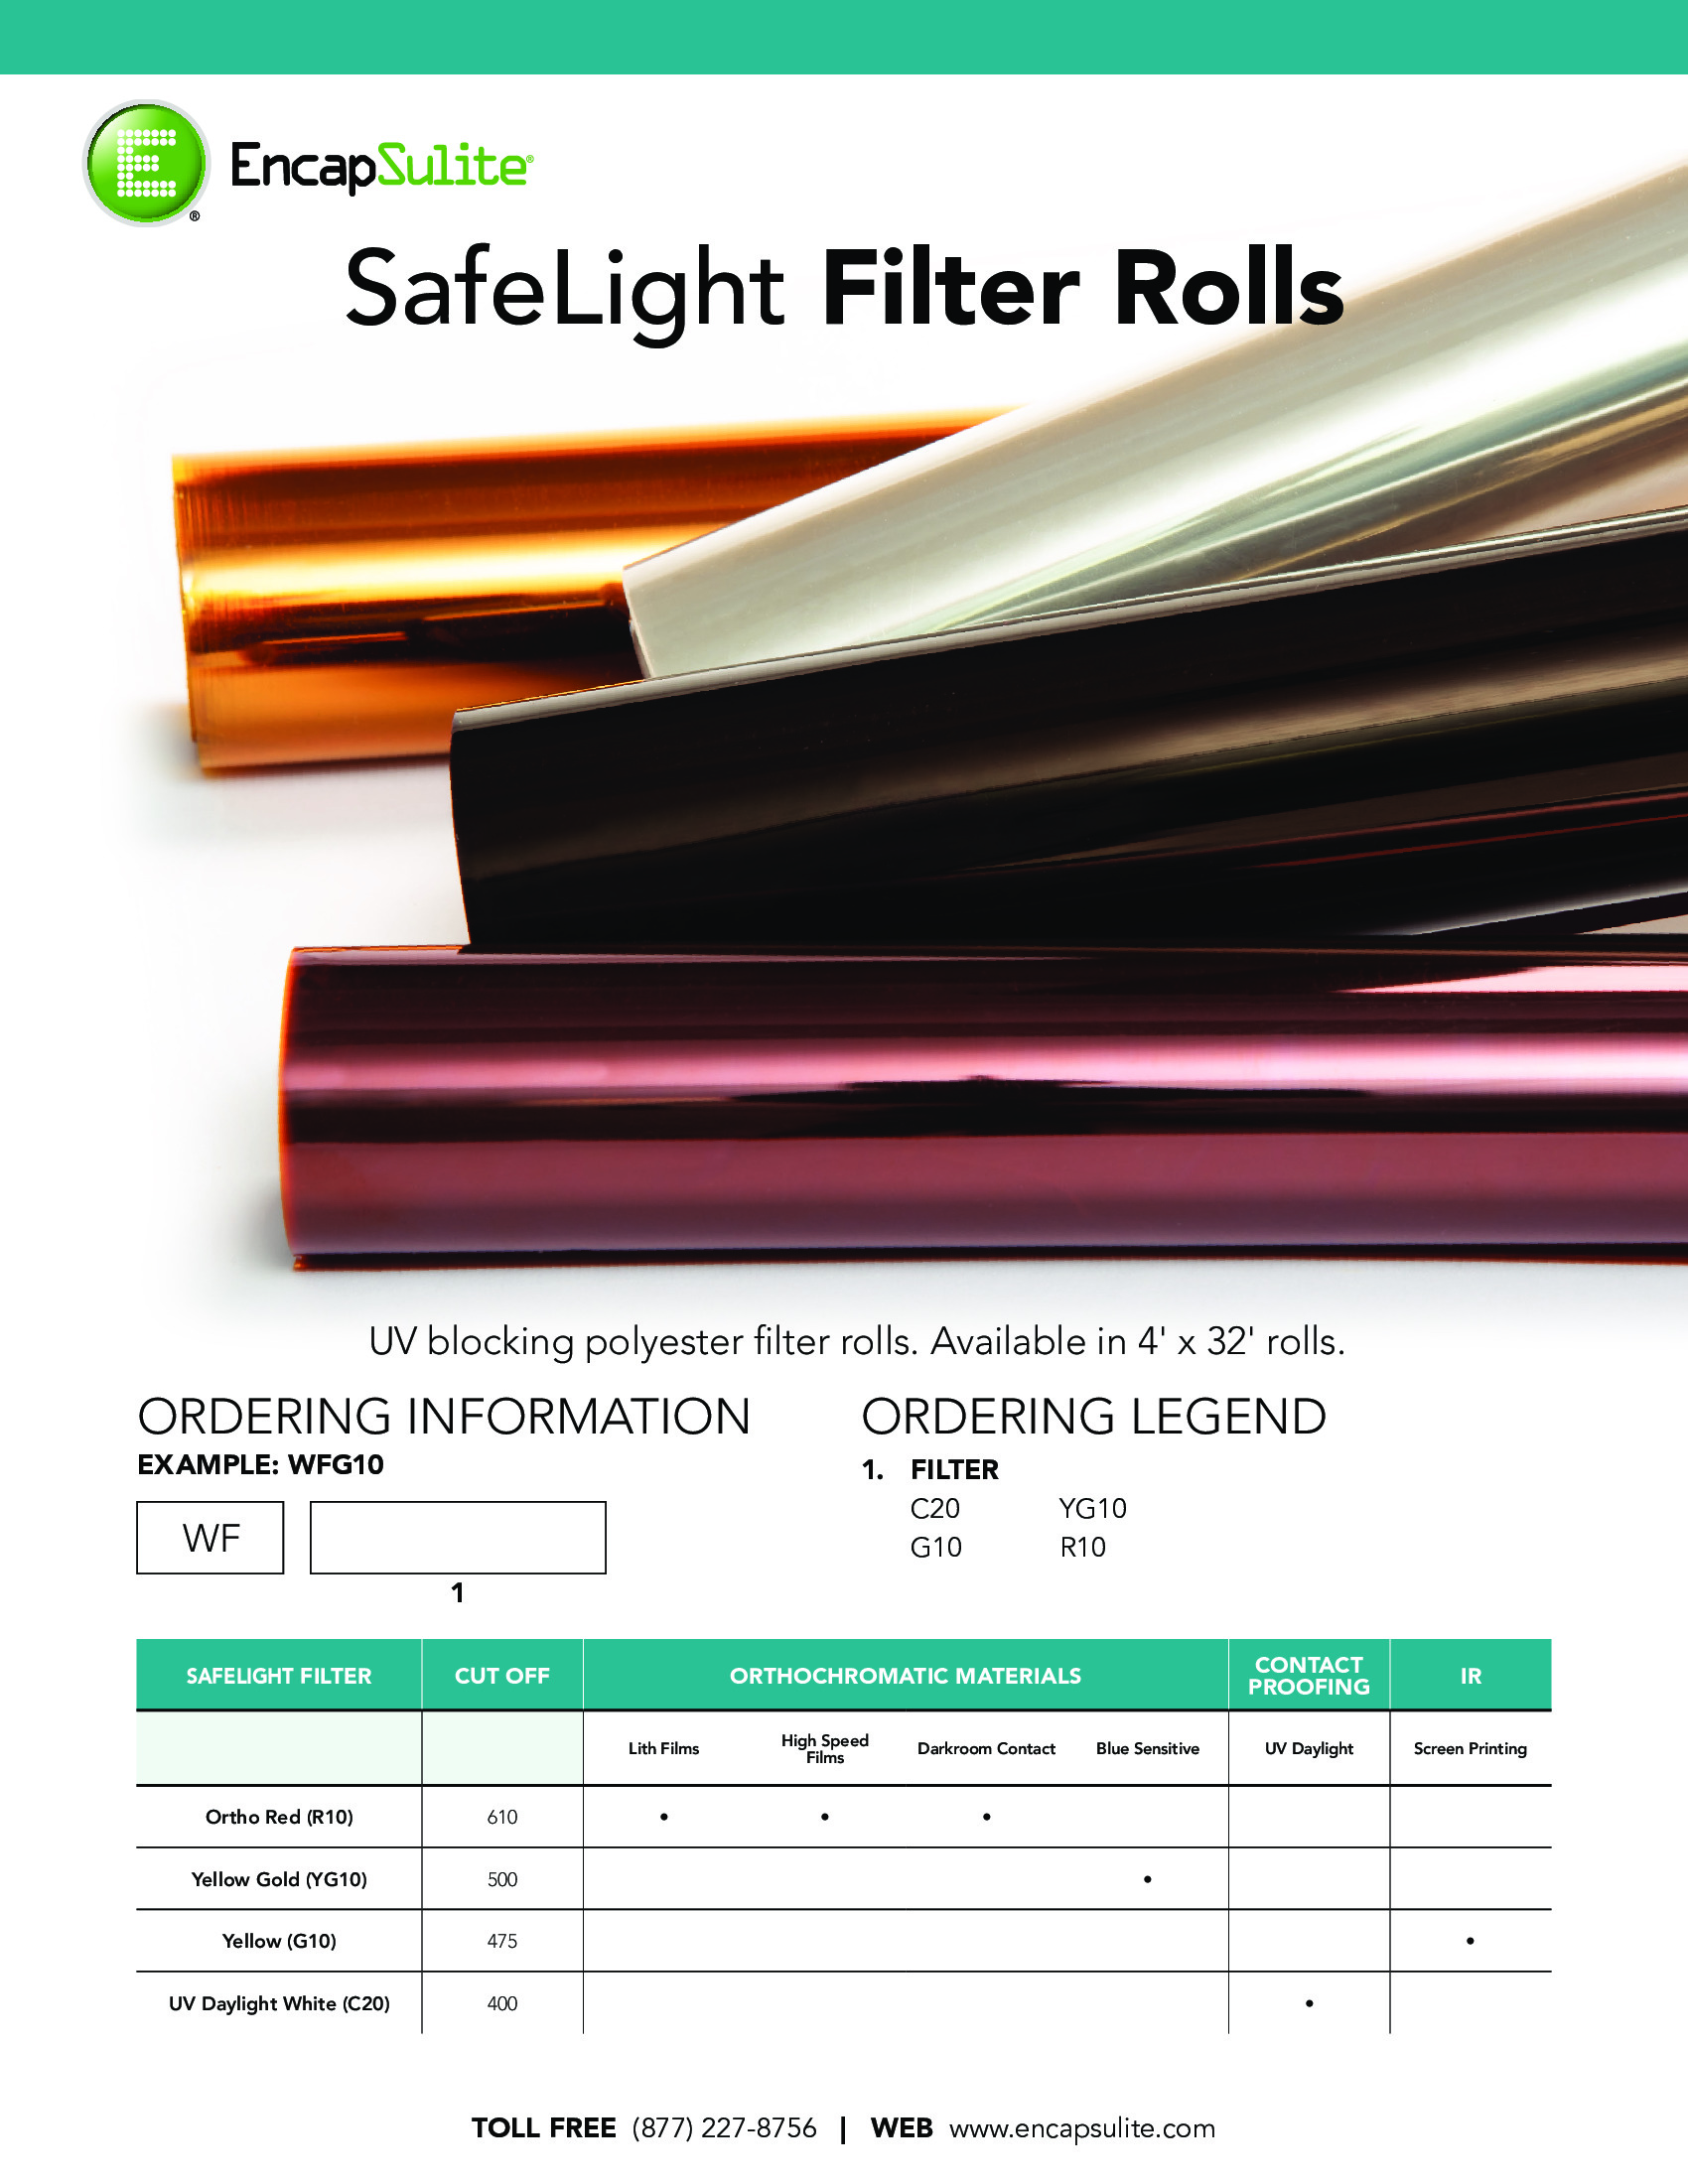 SafeLight Filter Roll Specification